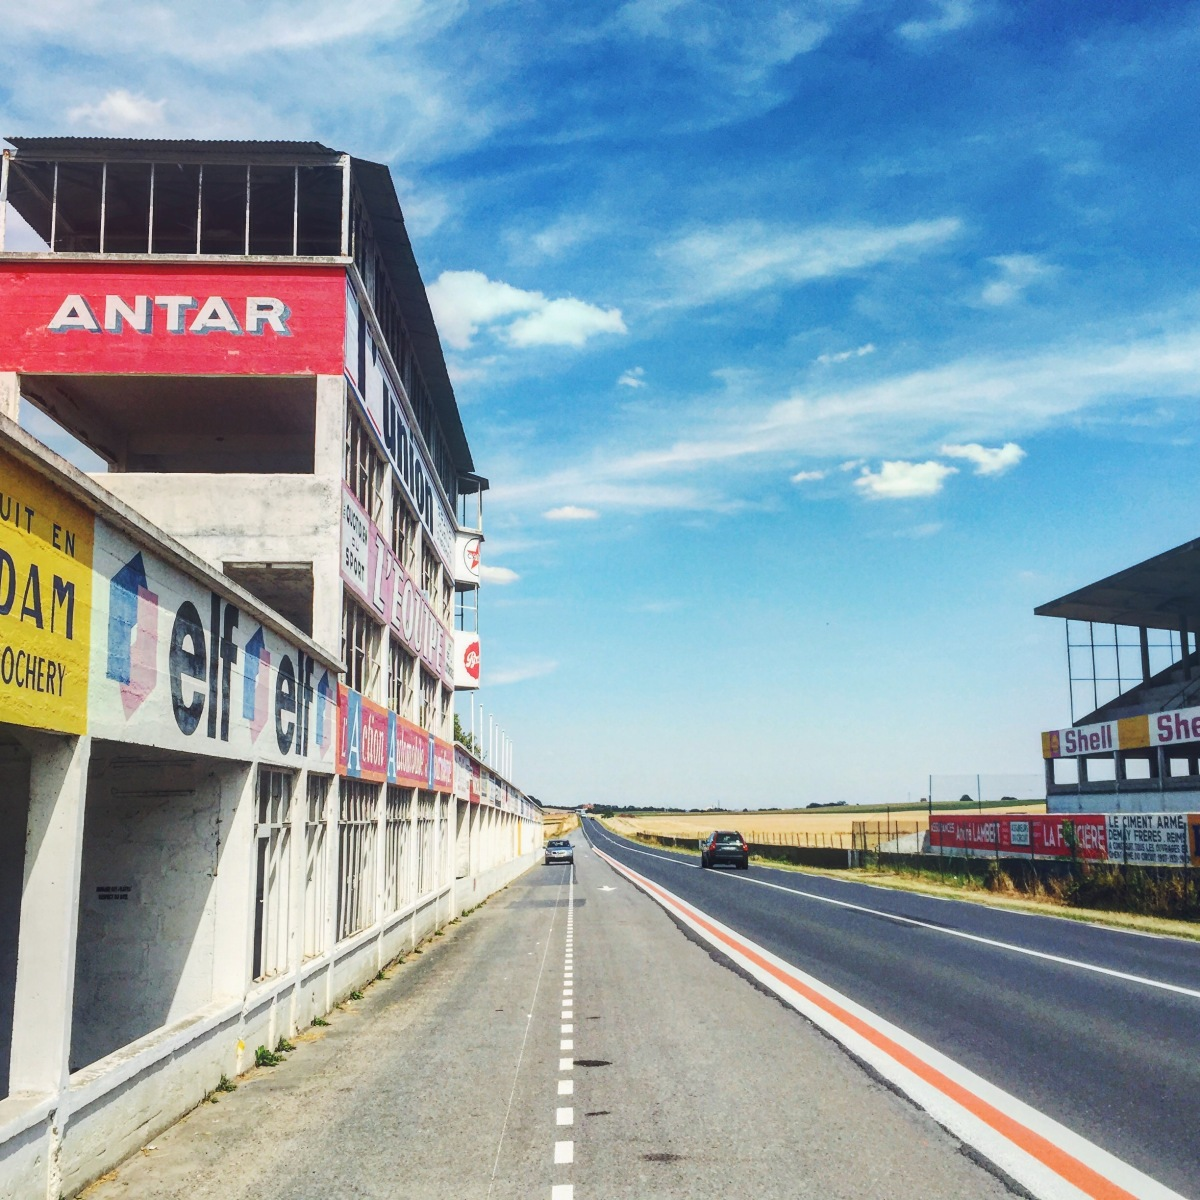 Le Mans and Reims - exploring France's motorsport heritage